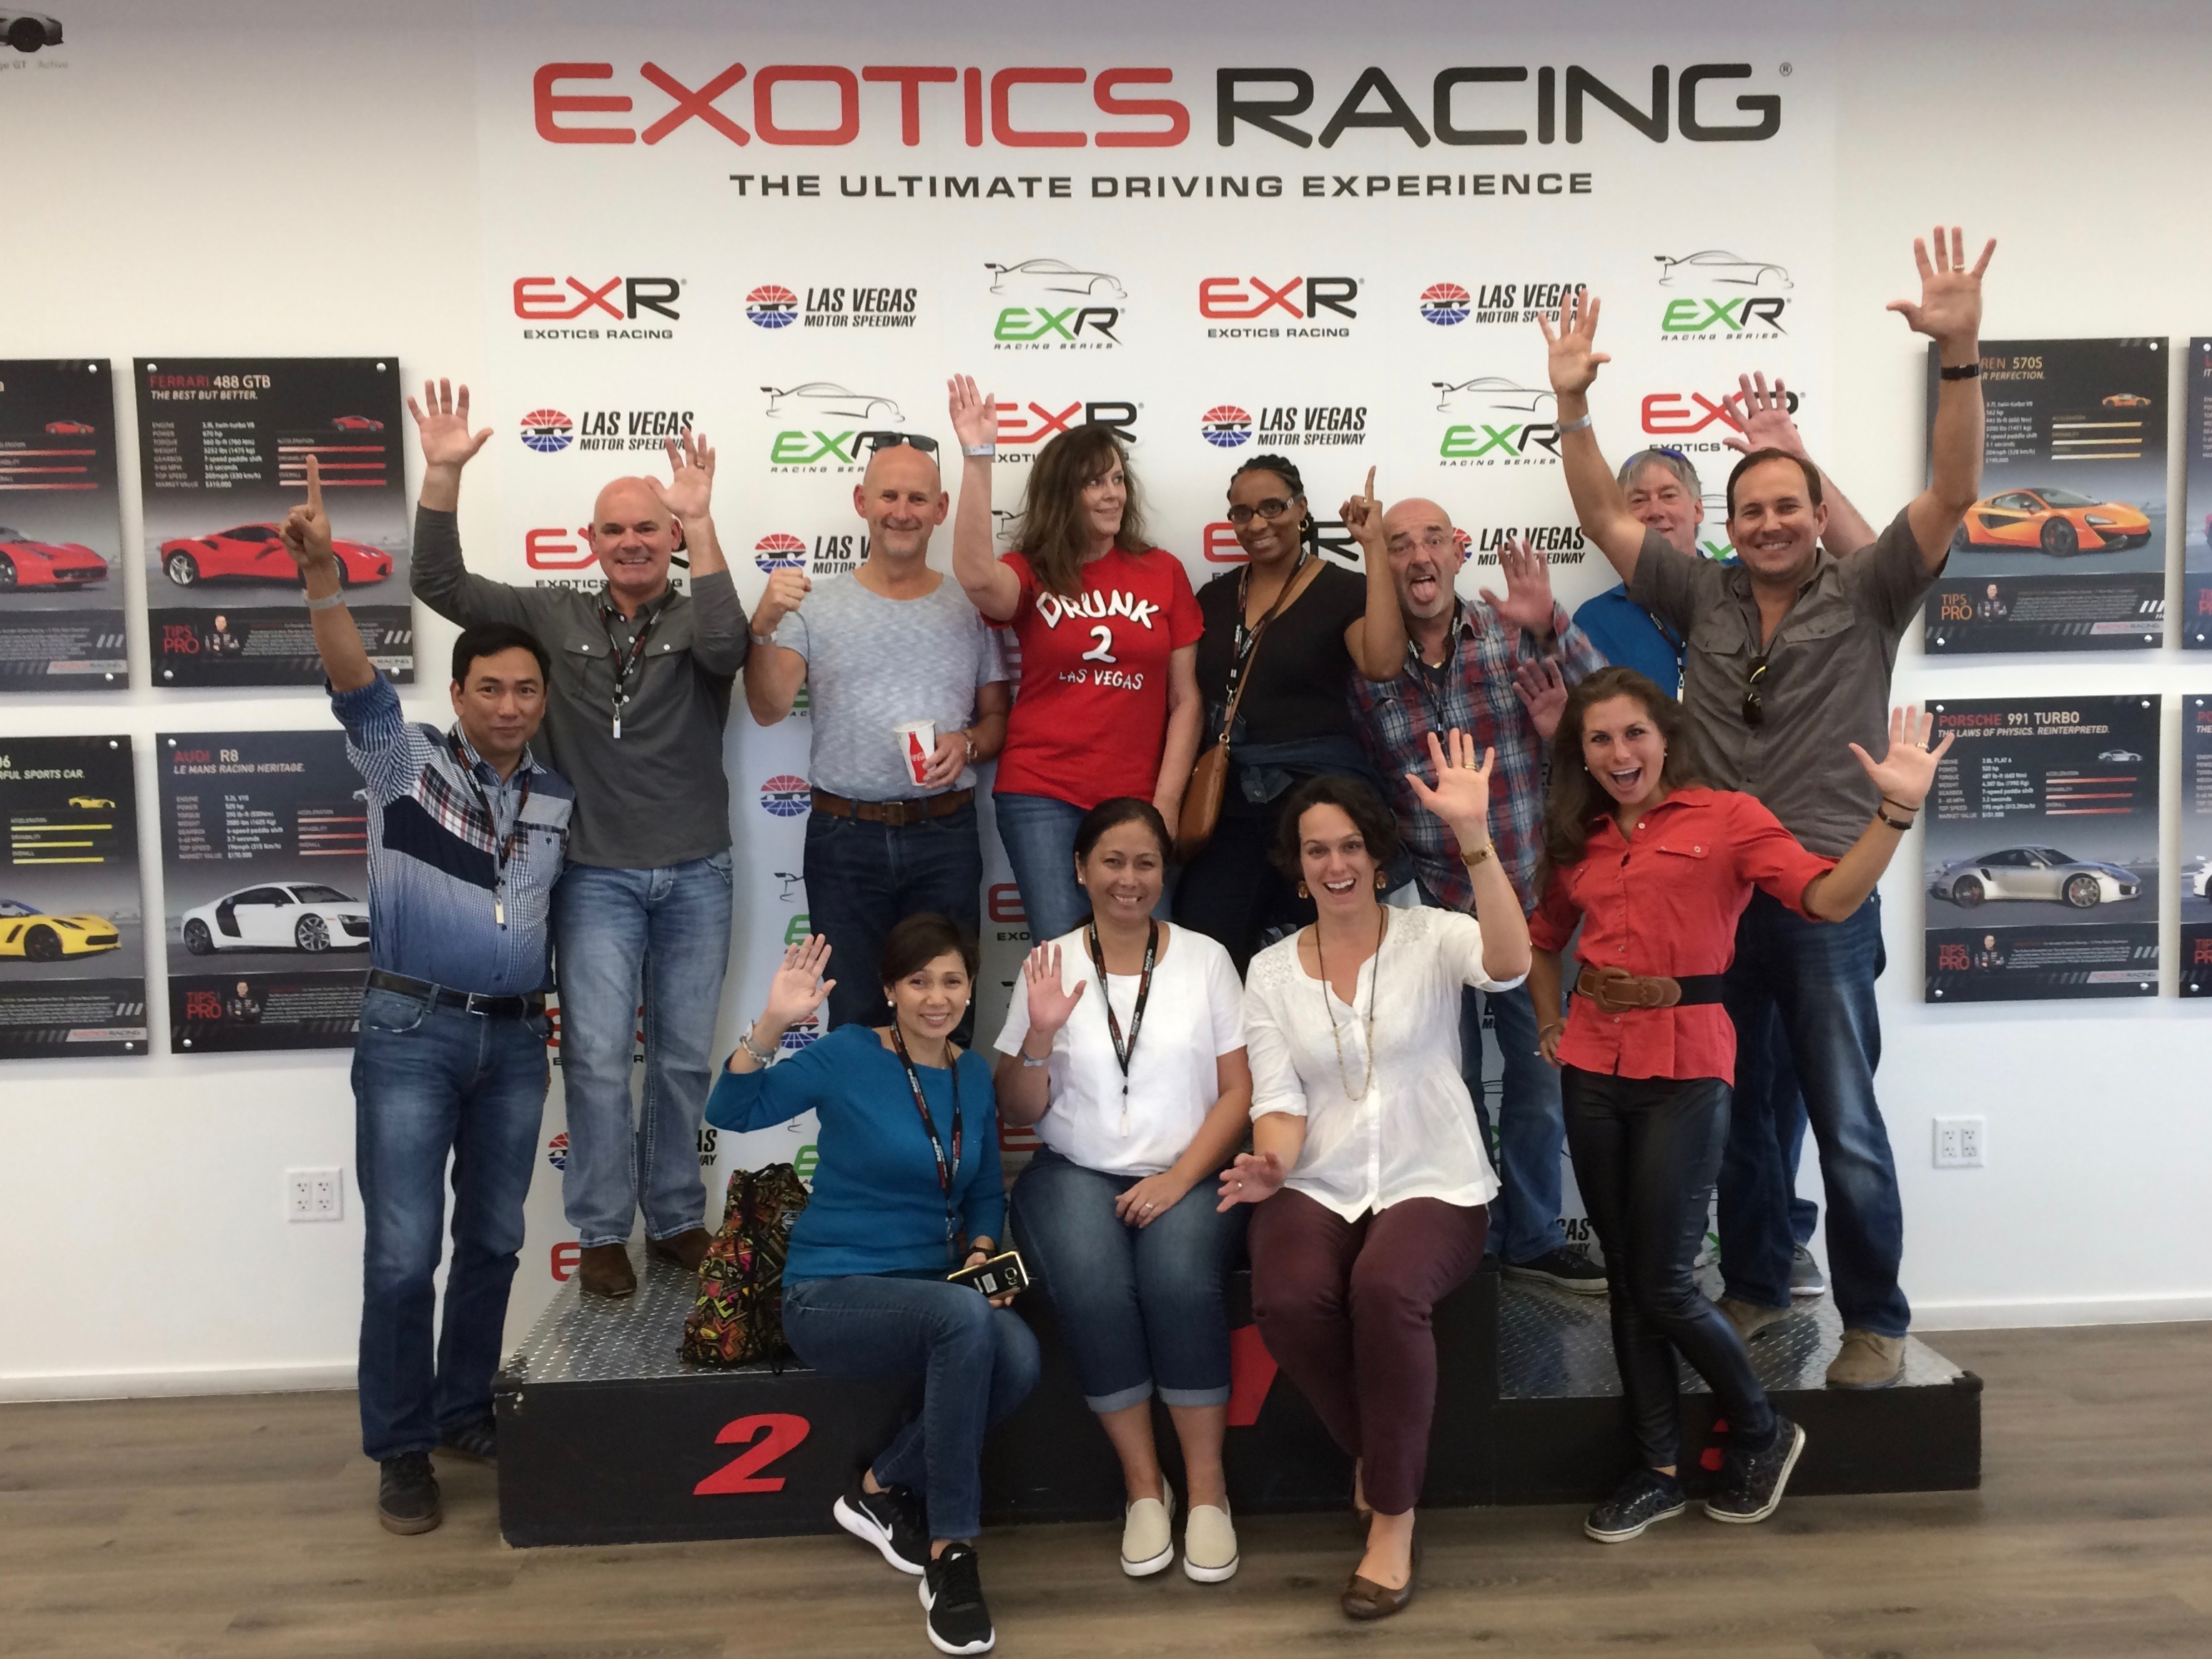 DDC Ex. Summit In Las Vegas Race Car Driving @ Exotics Racing.jpg